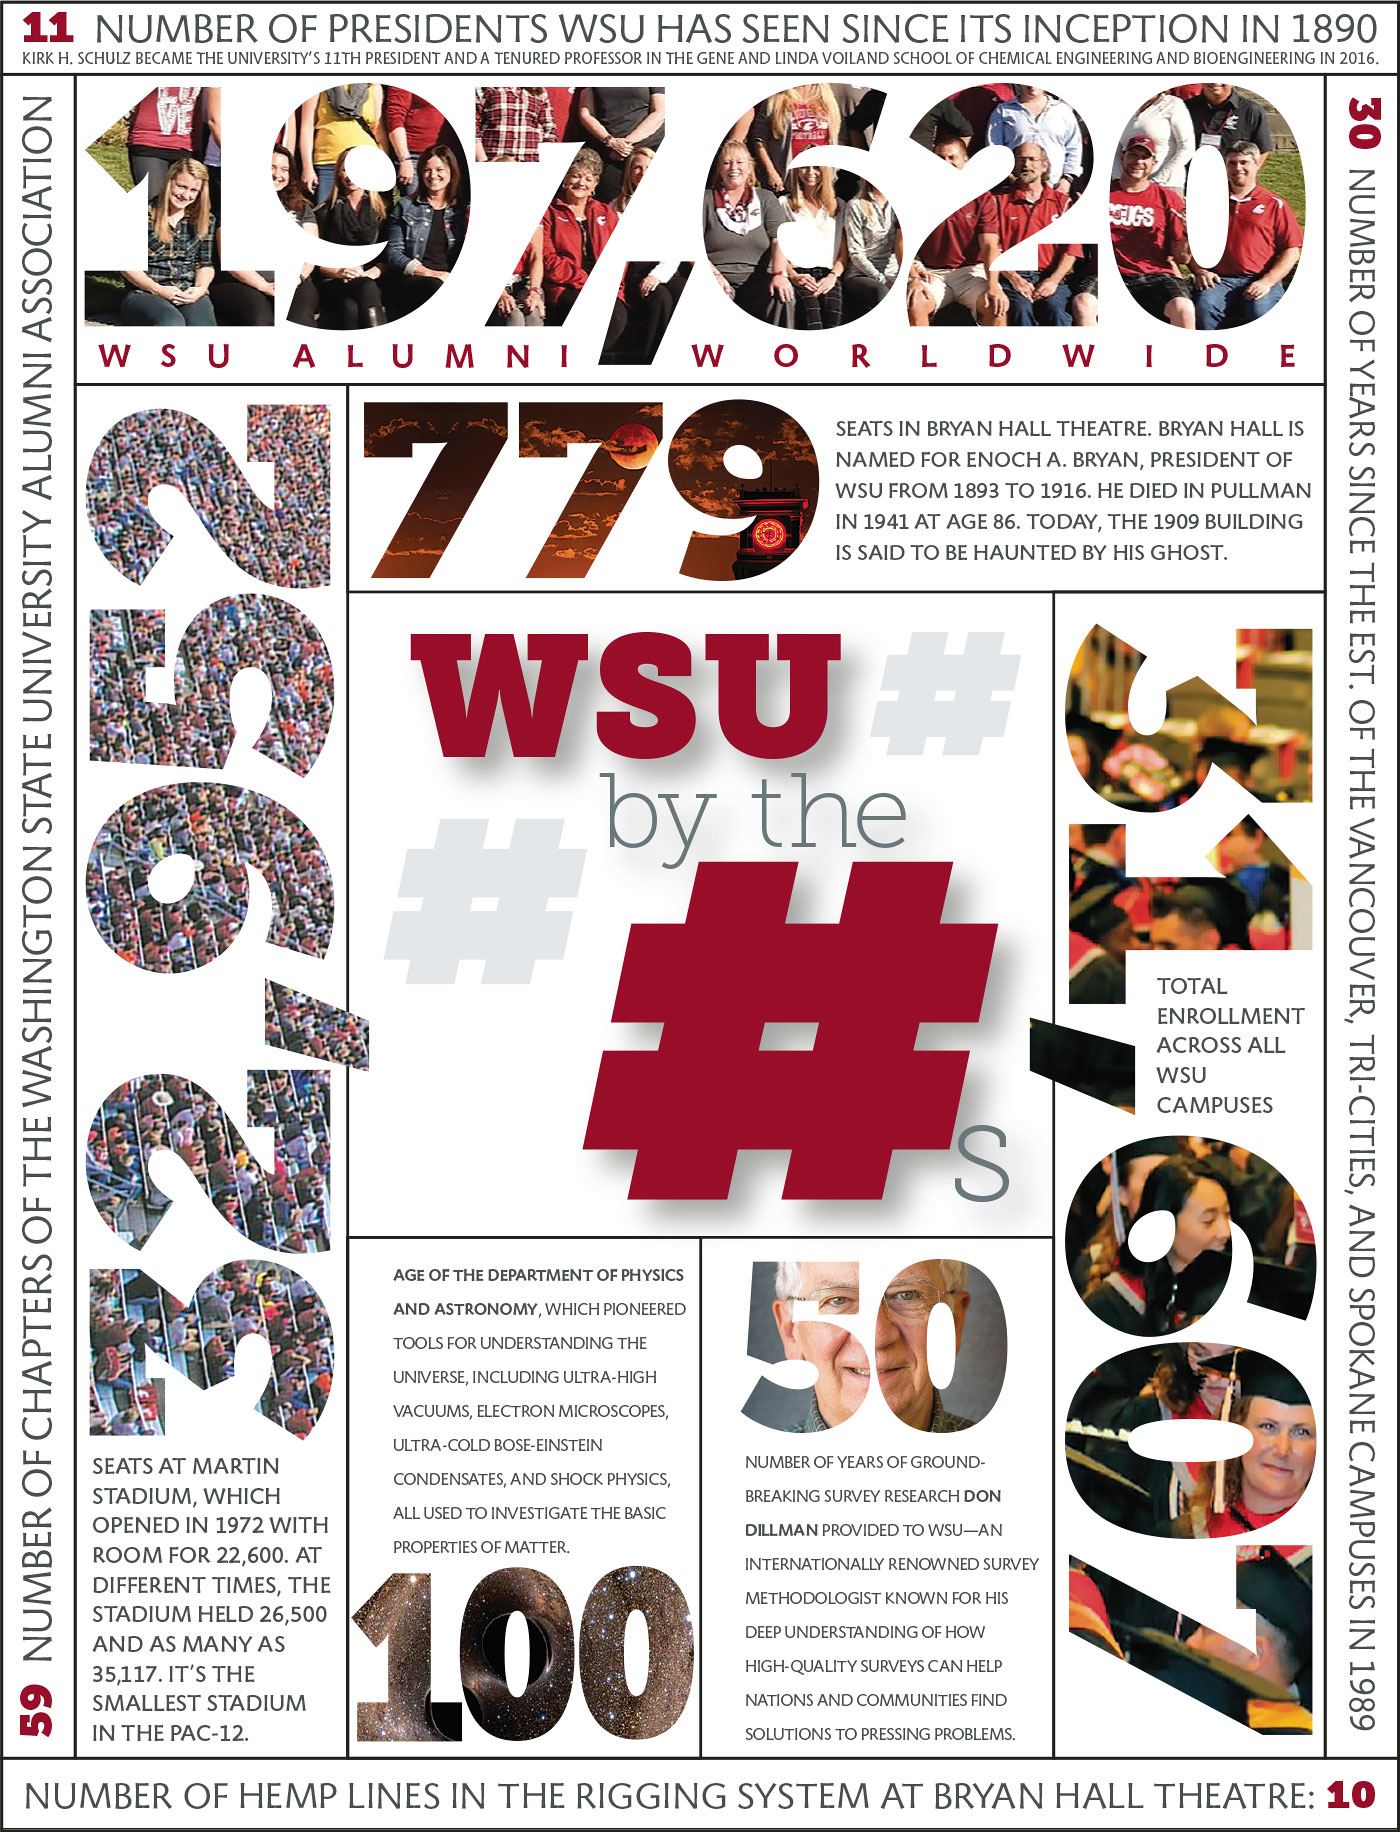 WSU by the number infographic